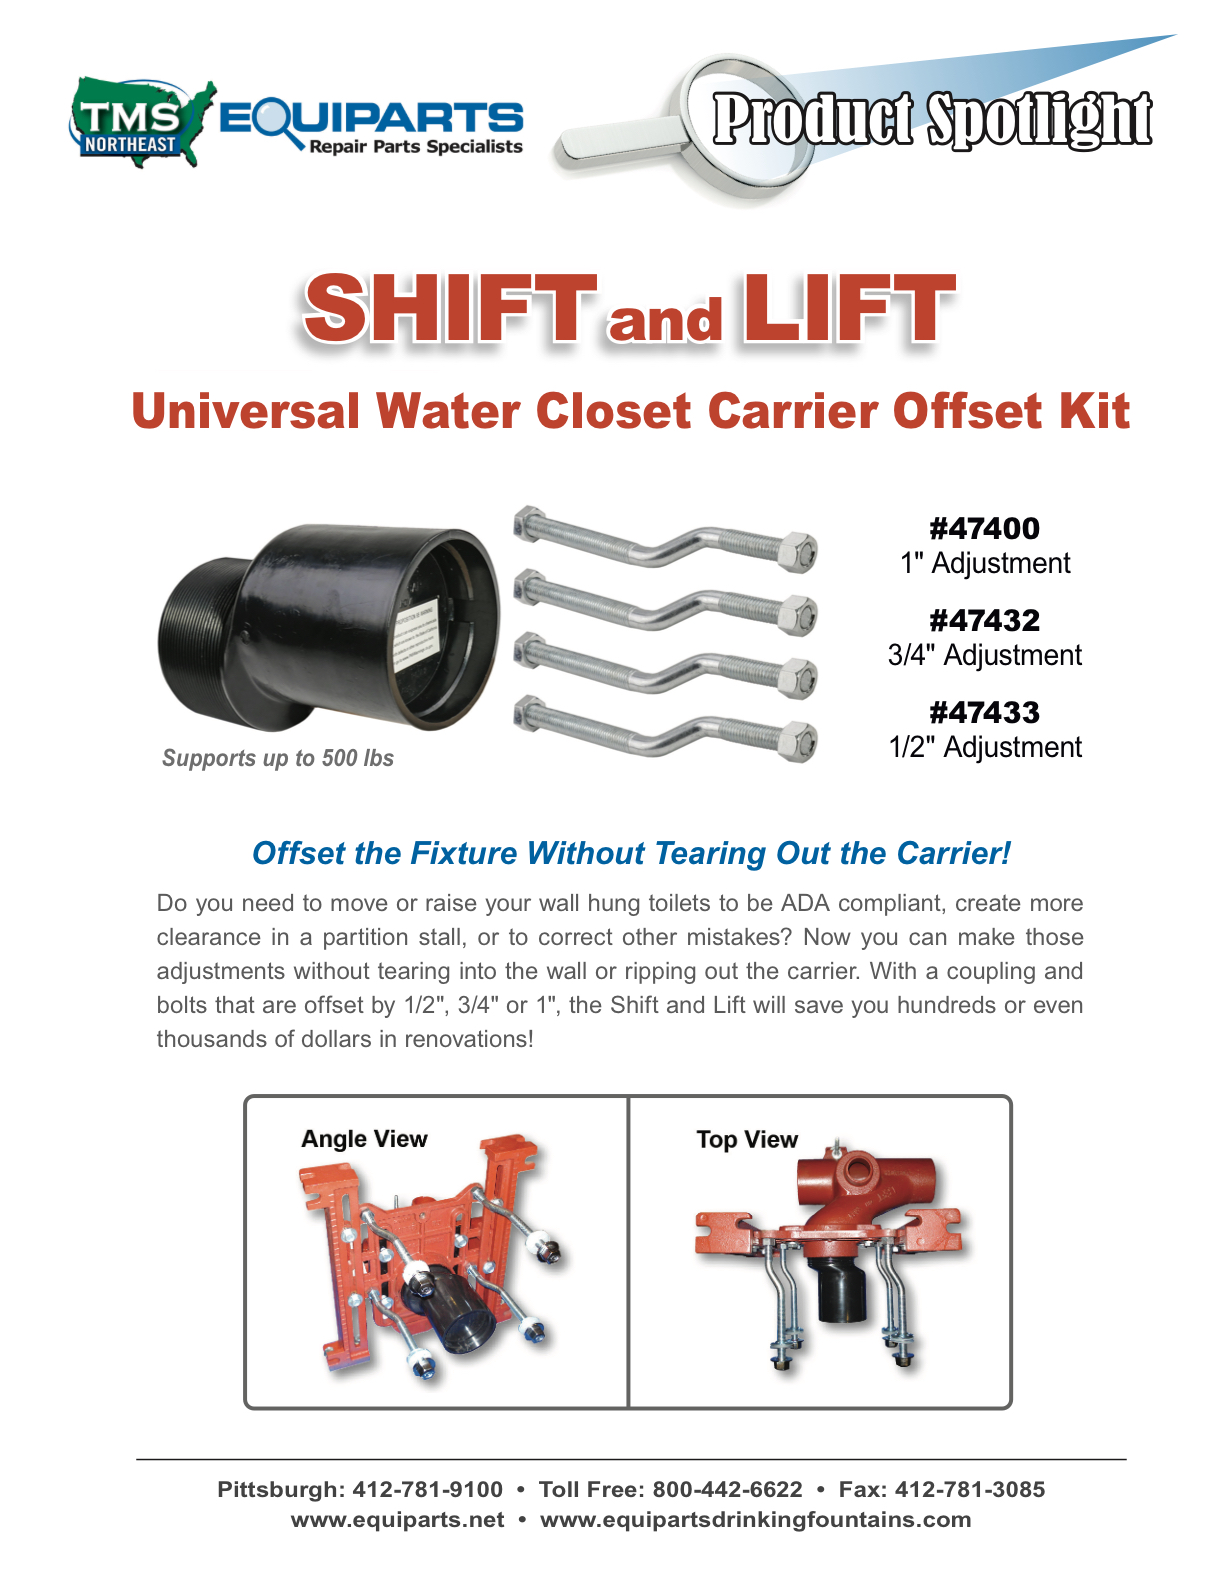 Mifab Shift and Lift Product Spotlight PDF